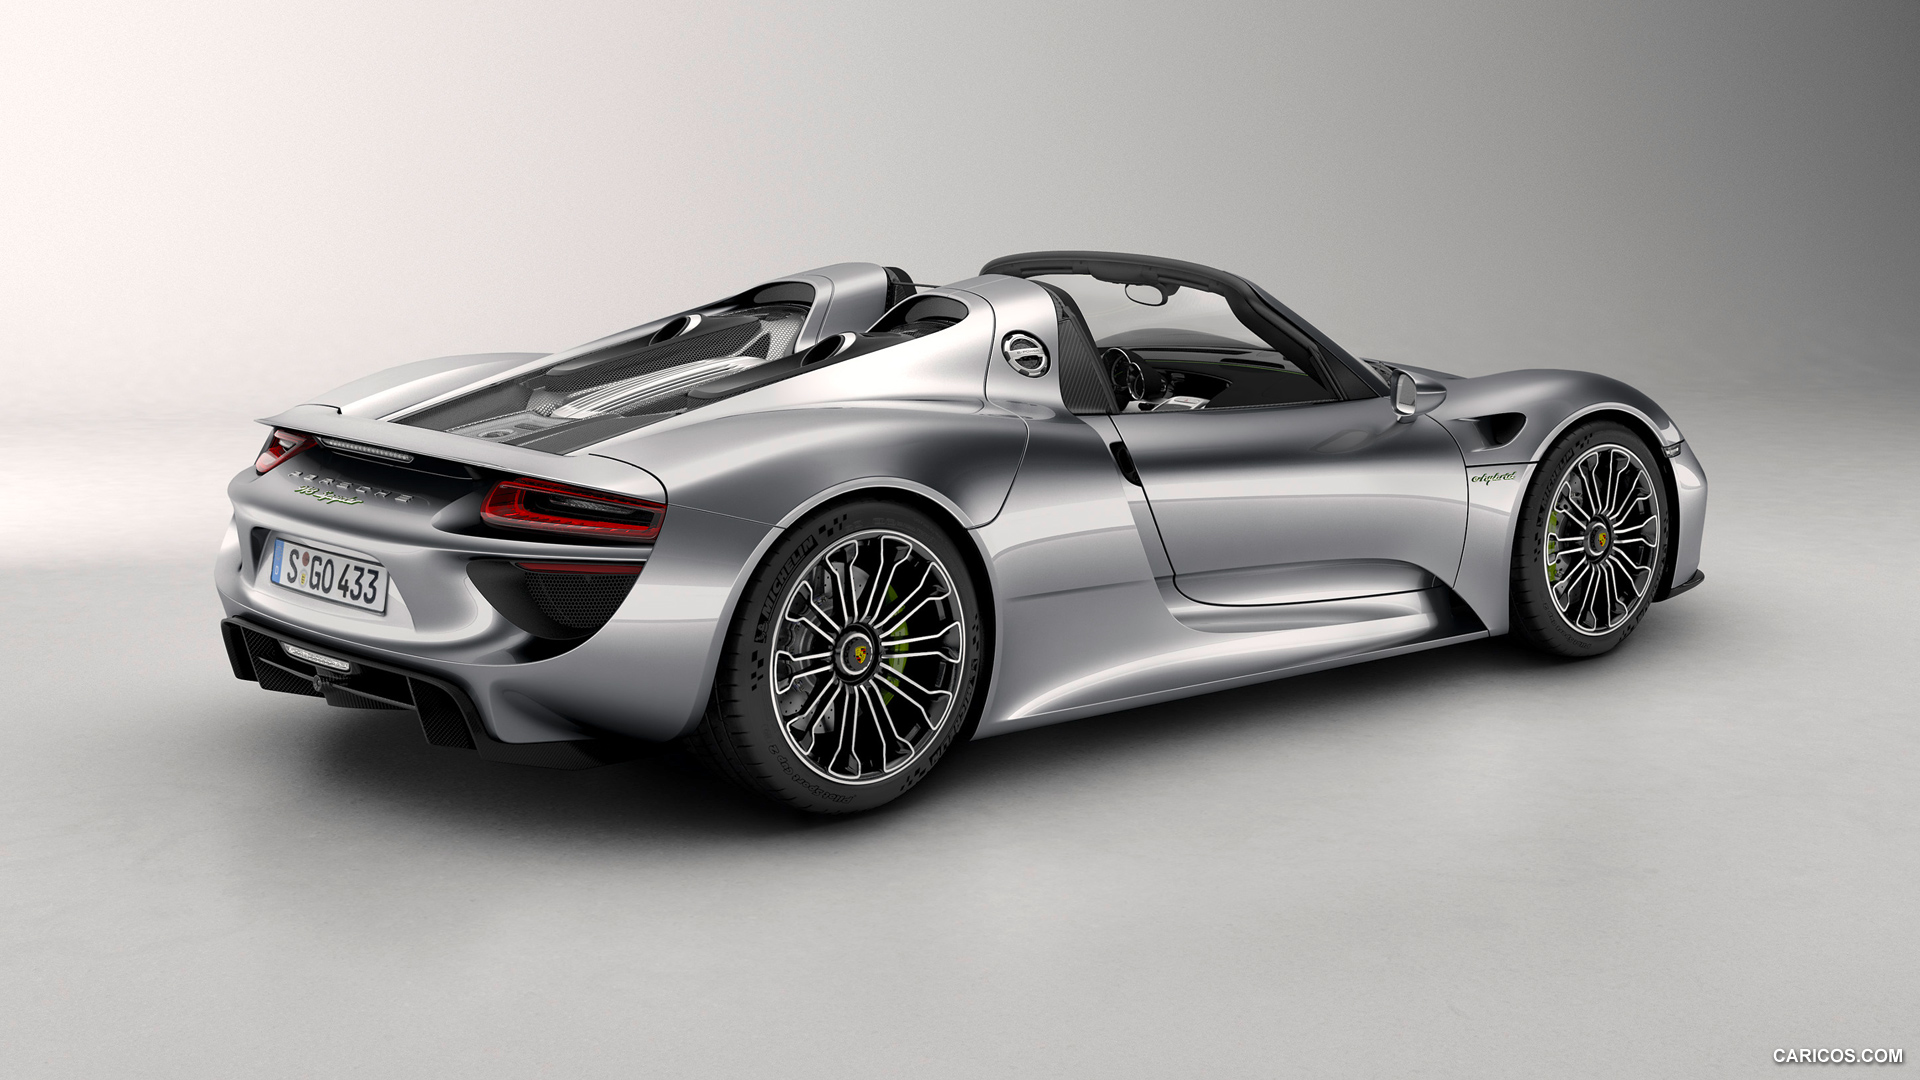 2014 Porsche 918 Spyder - Rear Wallpaper